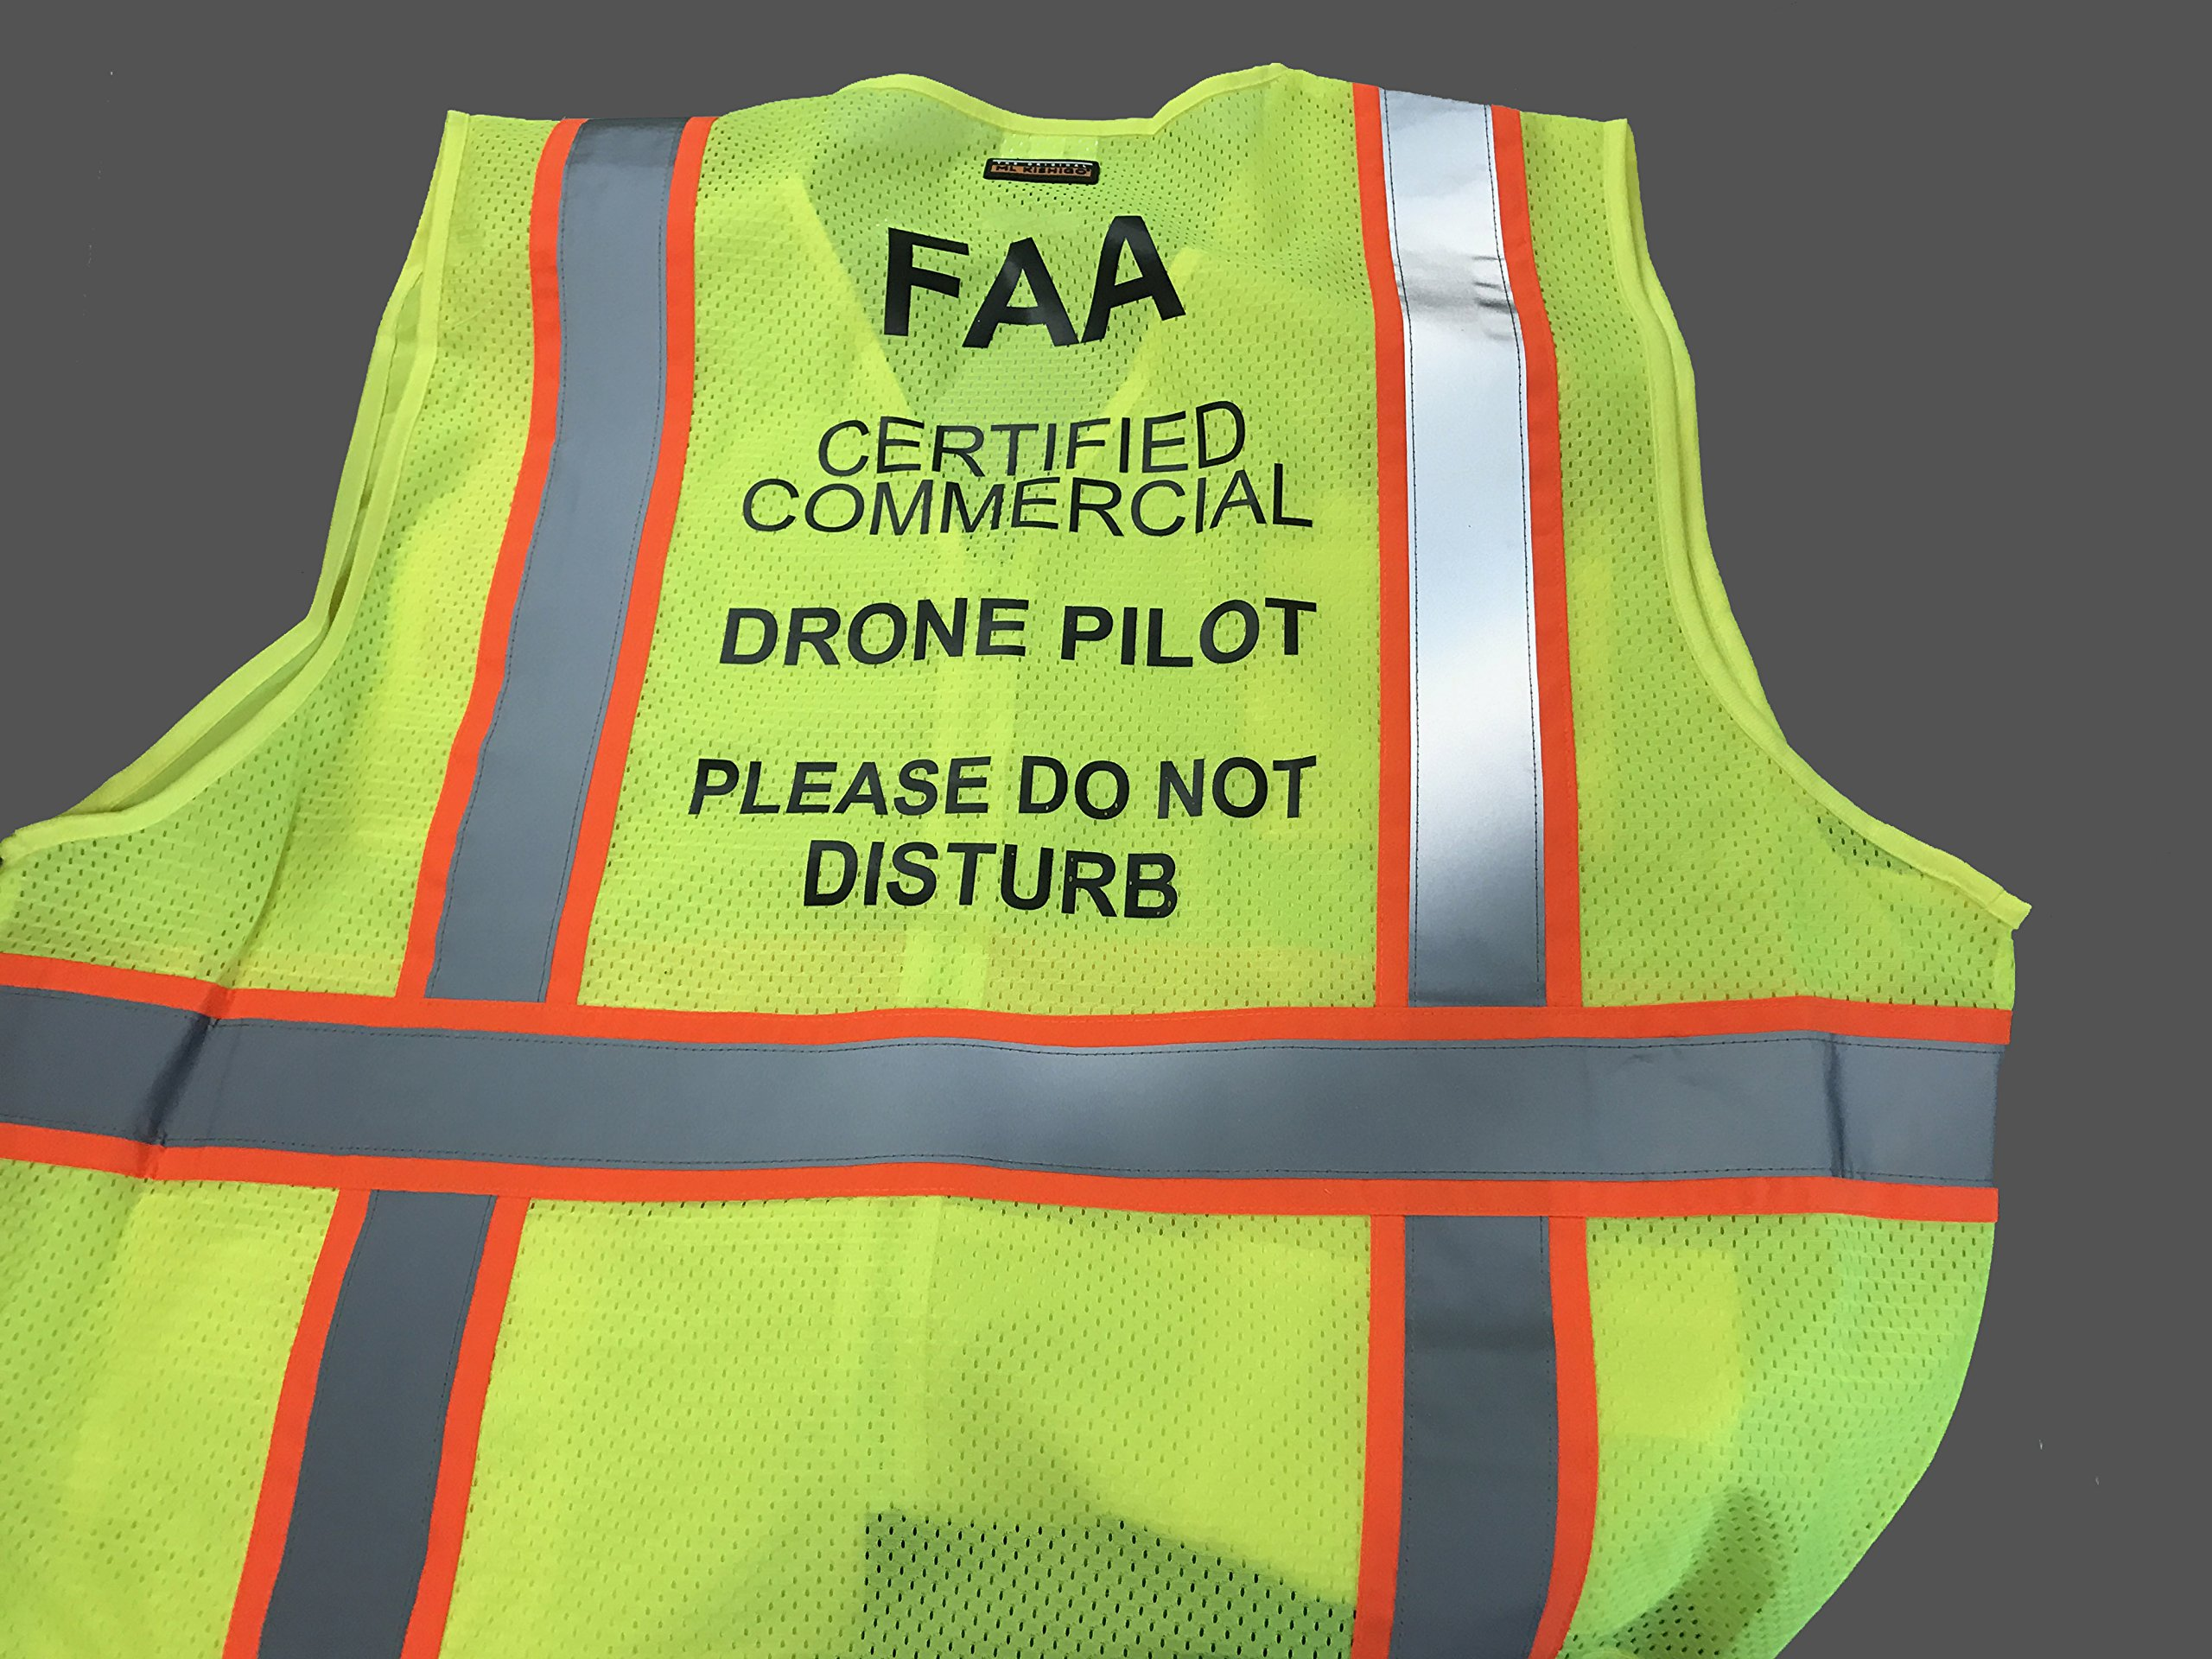 Custom Safety Reflective Mesh Vest with Zipper - Personalized Drone Pilot Vest by Safety Miracle (Image #6)